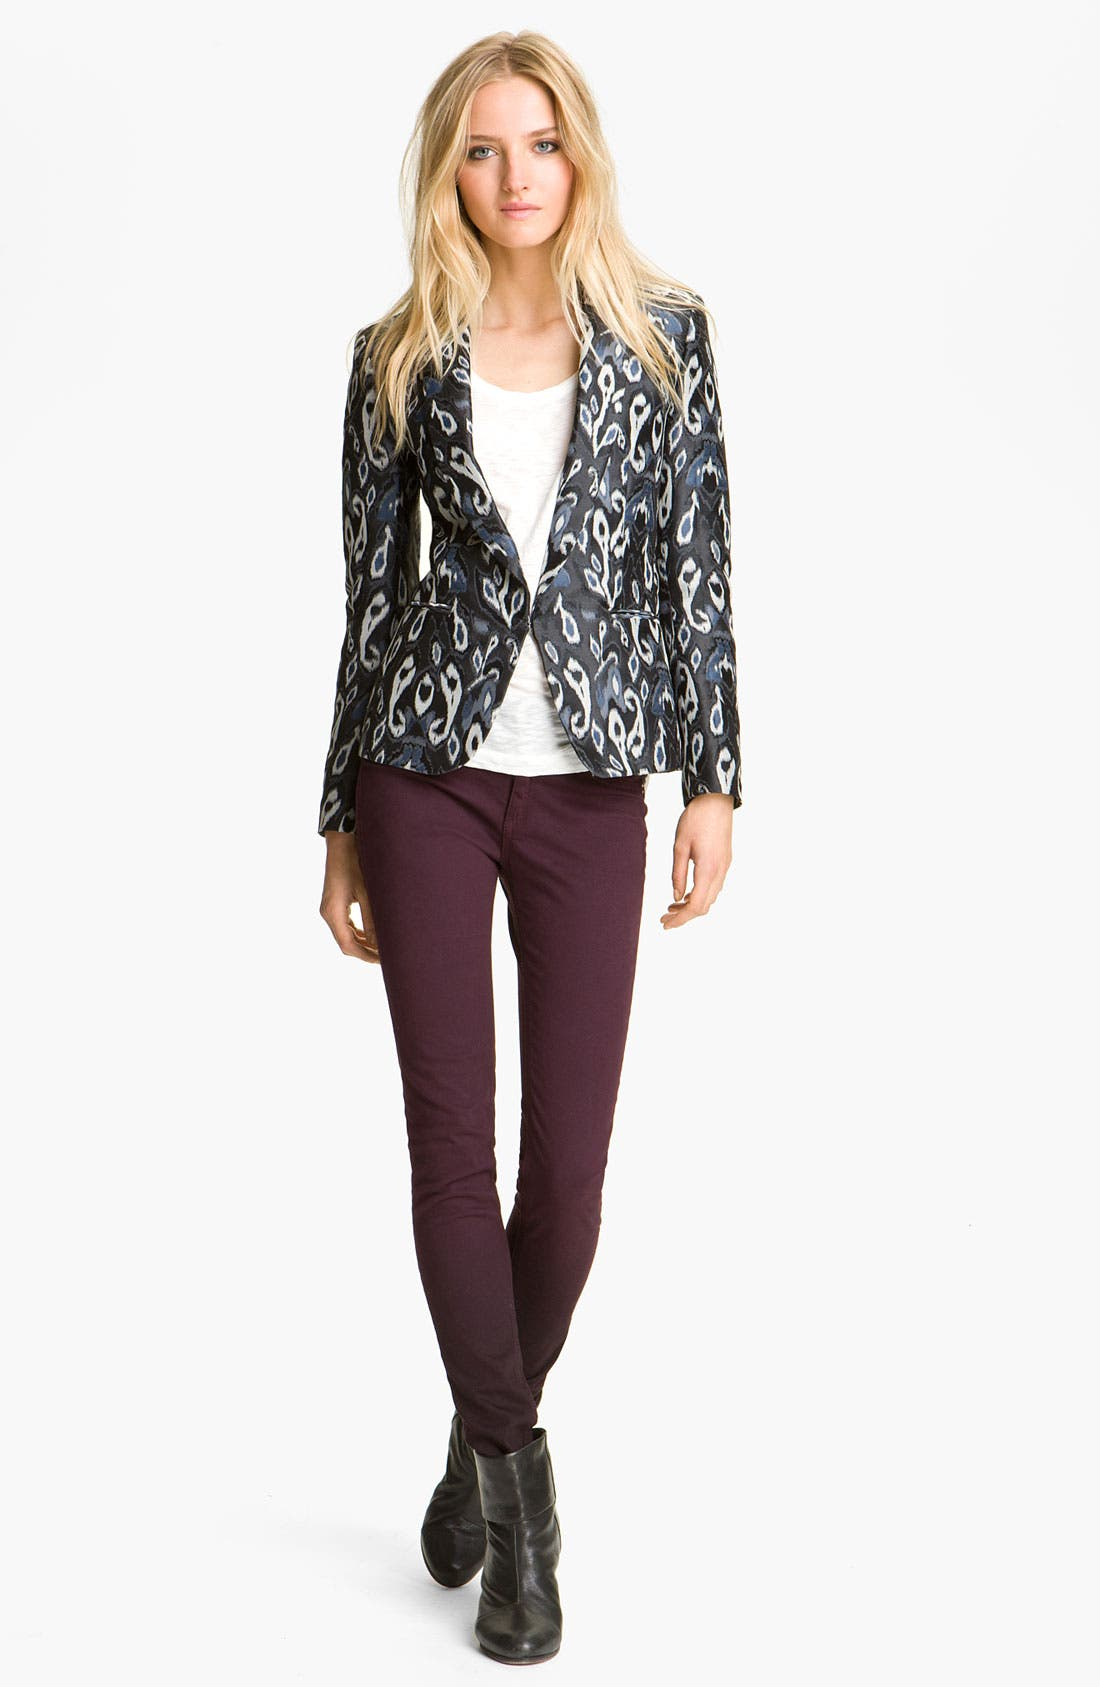 Alternate Image 1 Selected - rag & bone Ikat Print Tuxedo Jacket